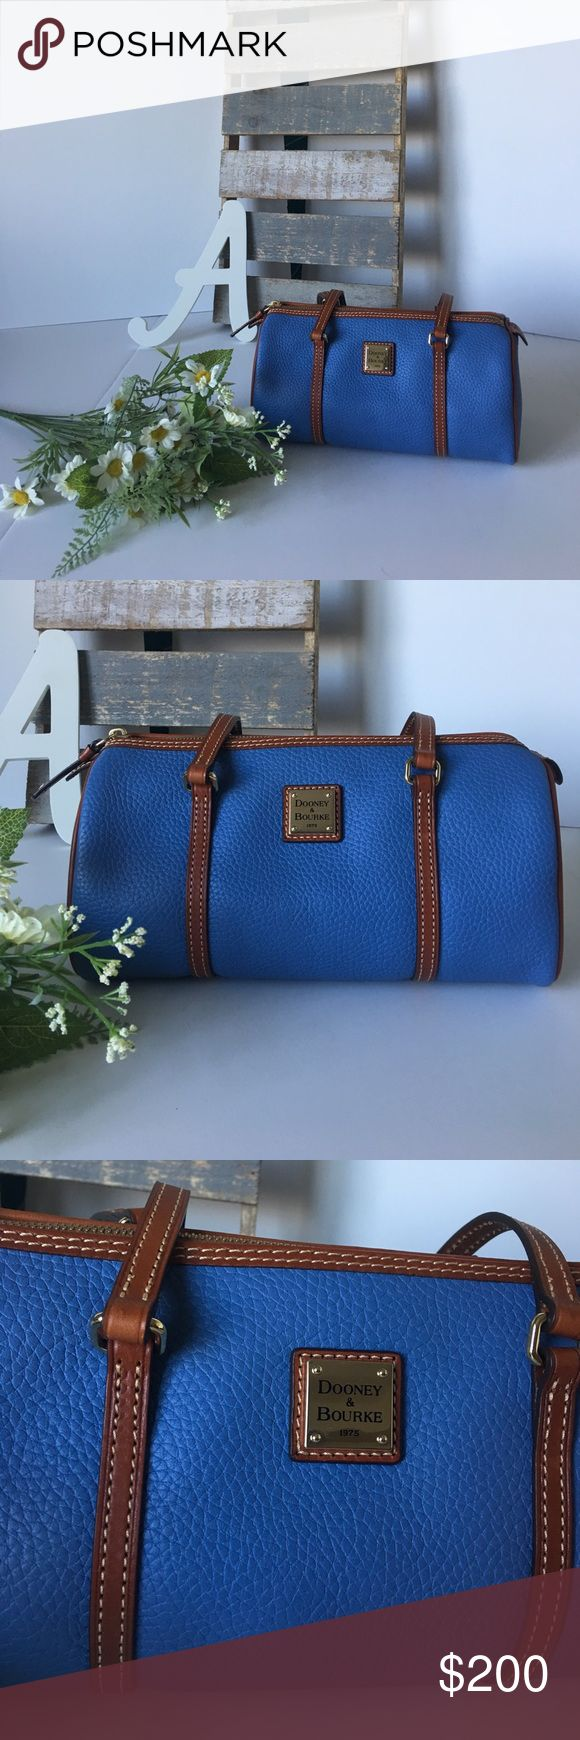 Dooney & Bourke Sky Blue Barrel Bag Authentic Dooney & Bourke Sky Blue Barrel Bag! Comes with registration number. When you get your registration number you fill out your information with the bag. Brand new with tags. Really great quality. Dooney & Bourke Bags